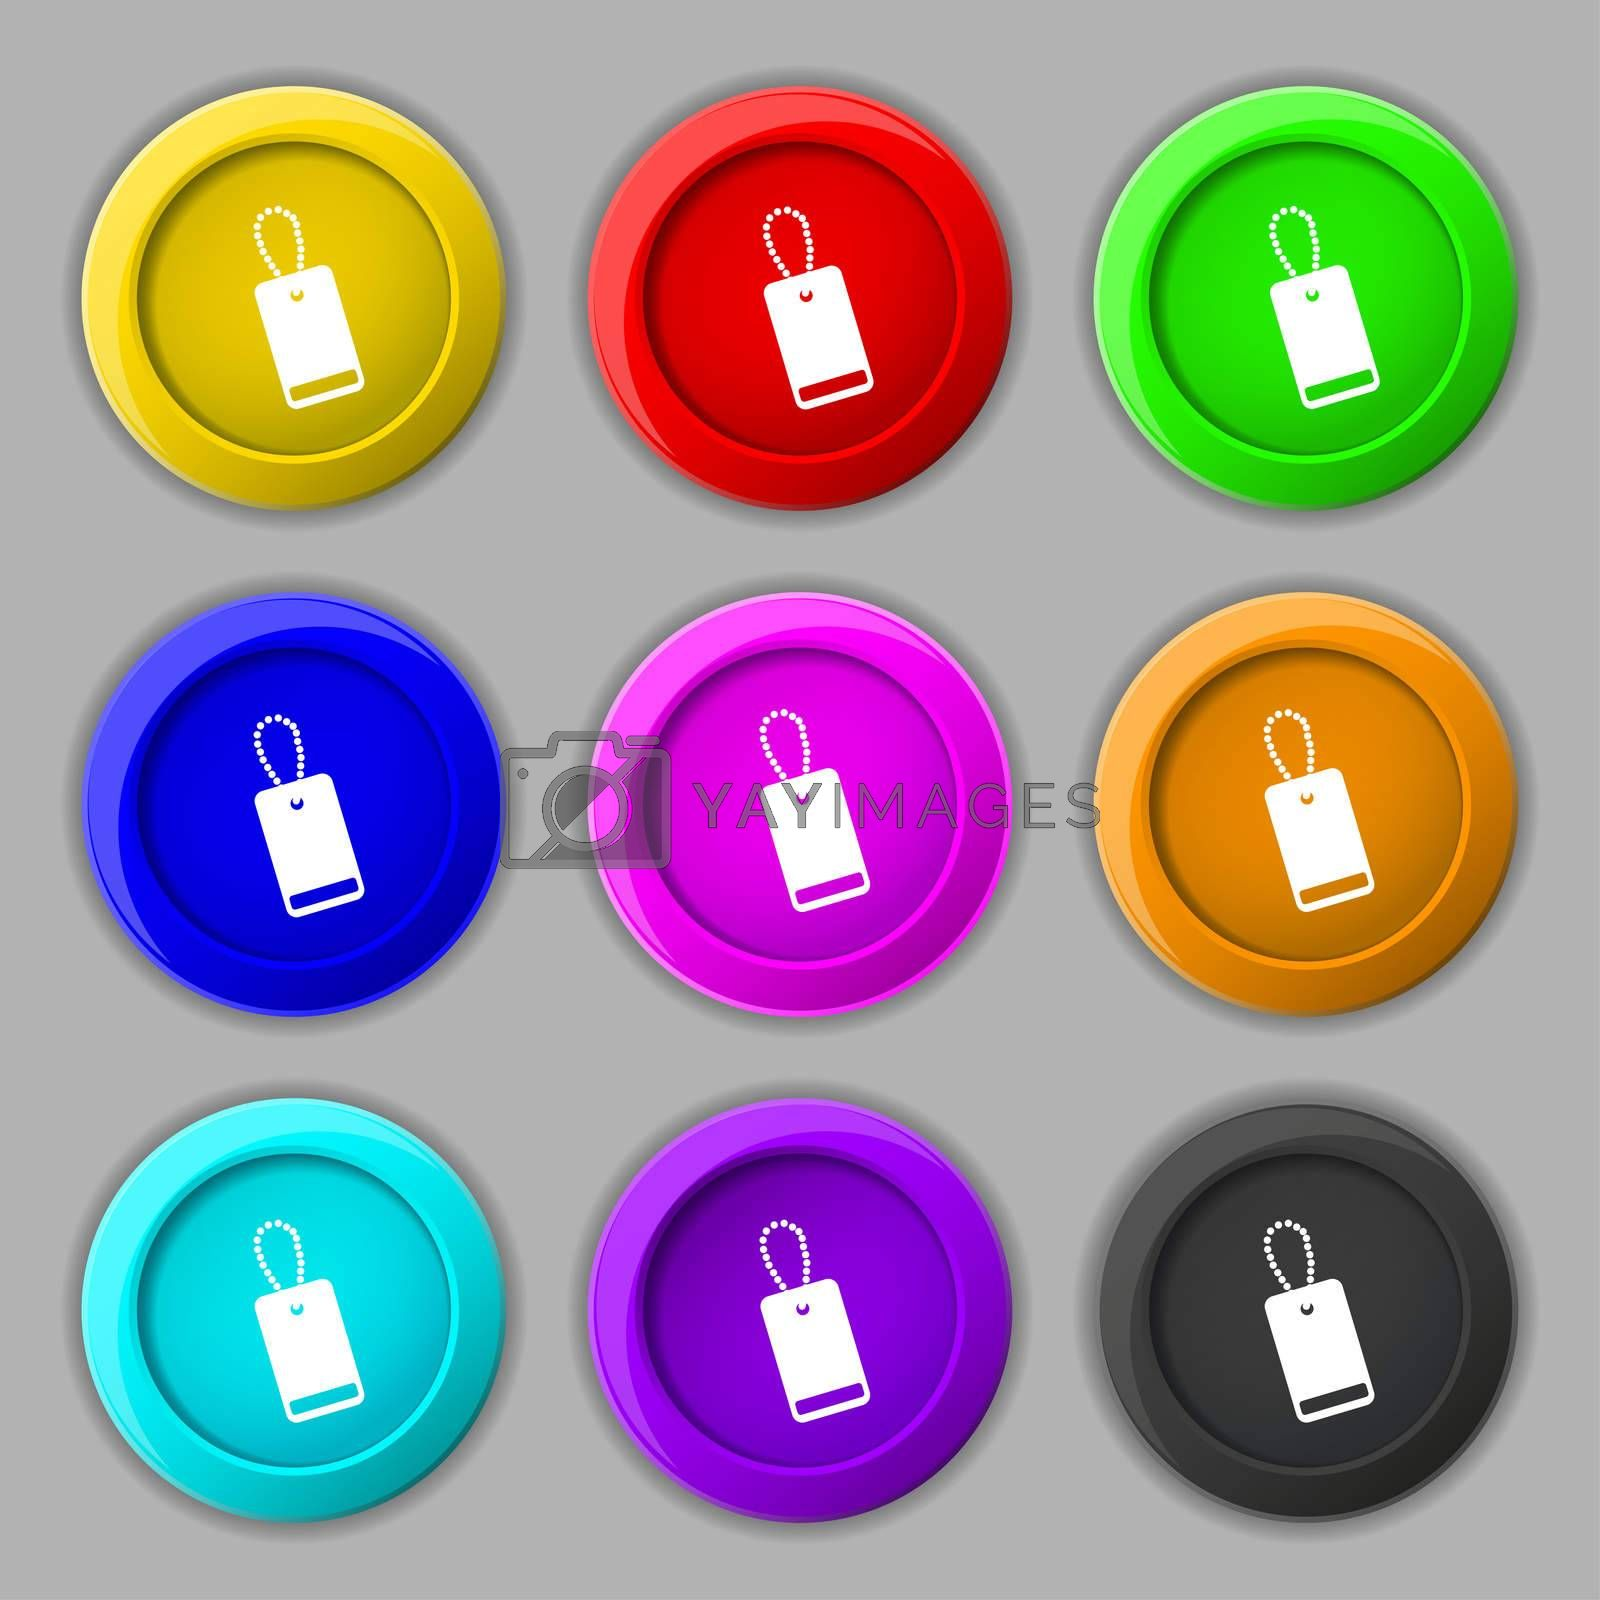 army chains icon sign. symbol on nine round colourful buttons.  by Serhii Lohvyniuk